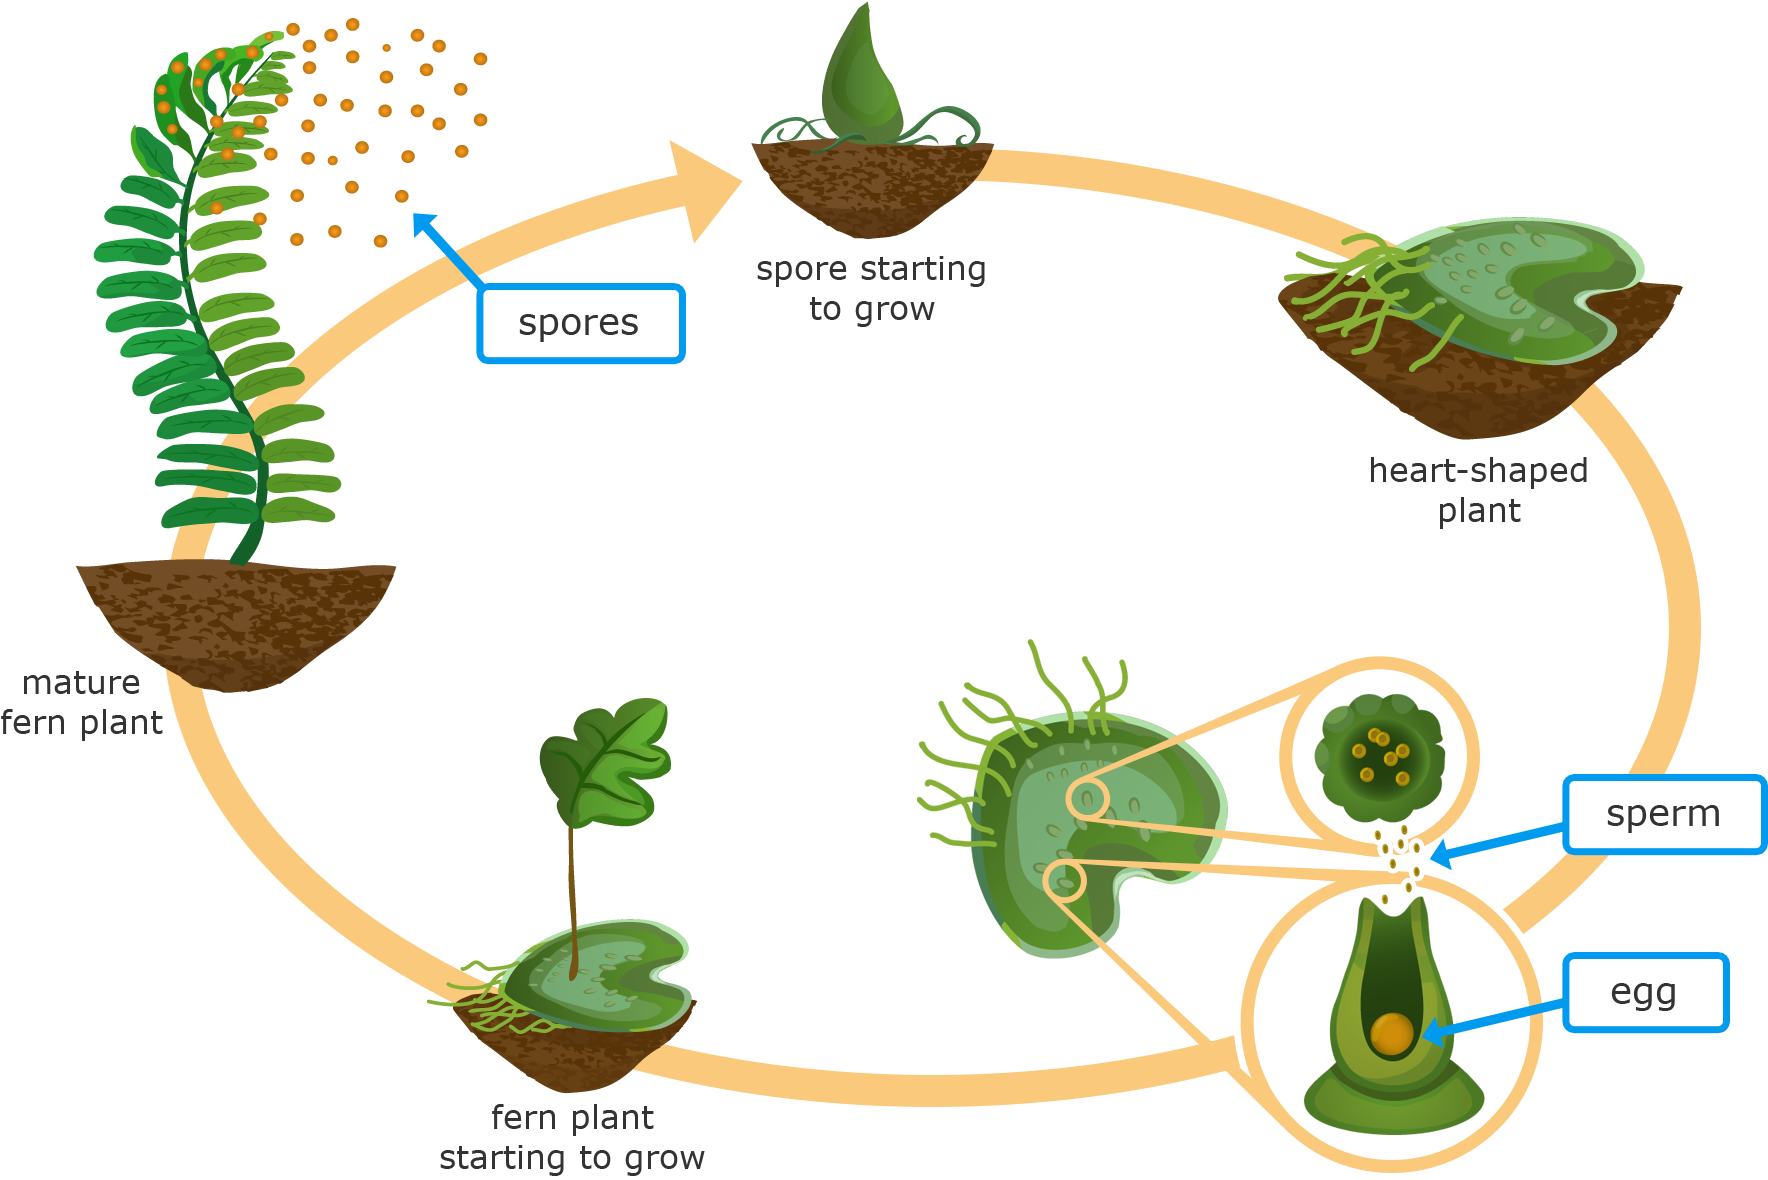 Reproduce clipart jpg freeuse download Ixl And Fern - Non Flowering Plants How Do They Reproduce ... jpg freeuse download